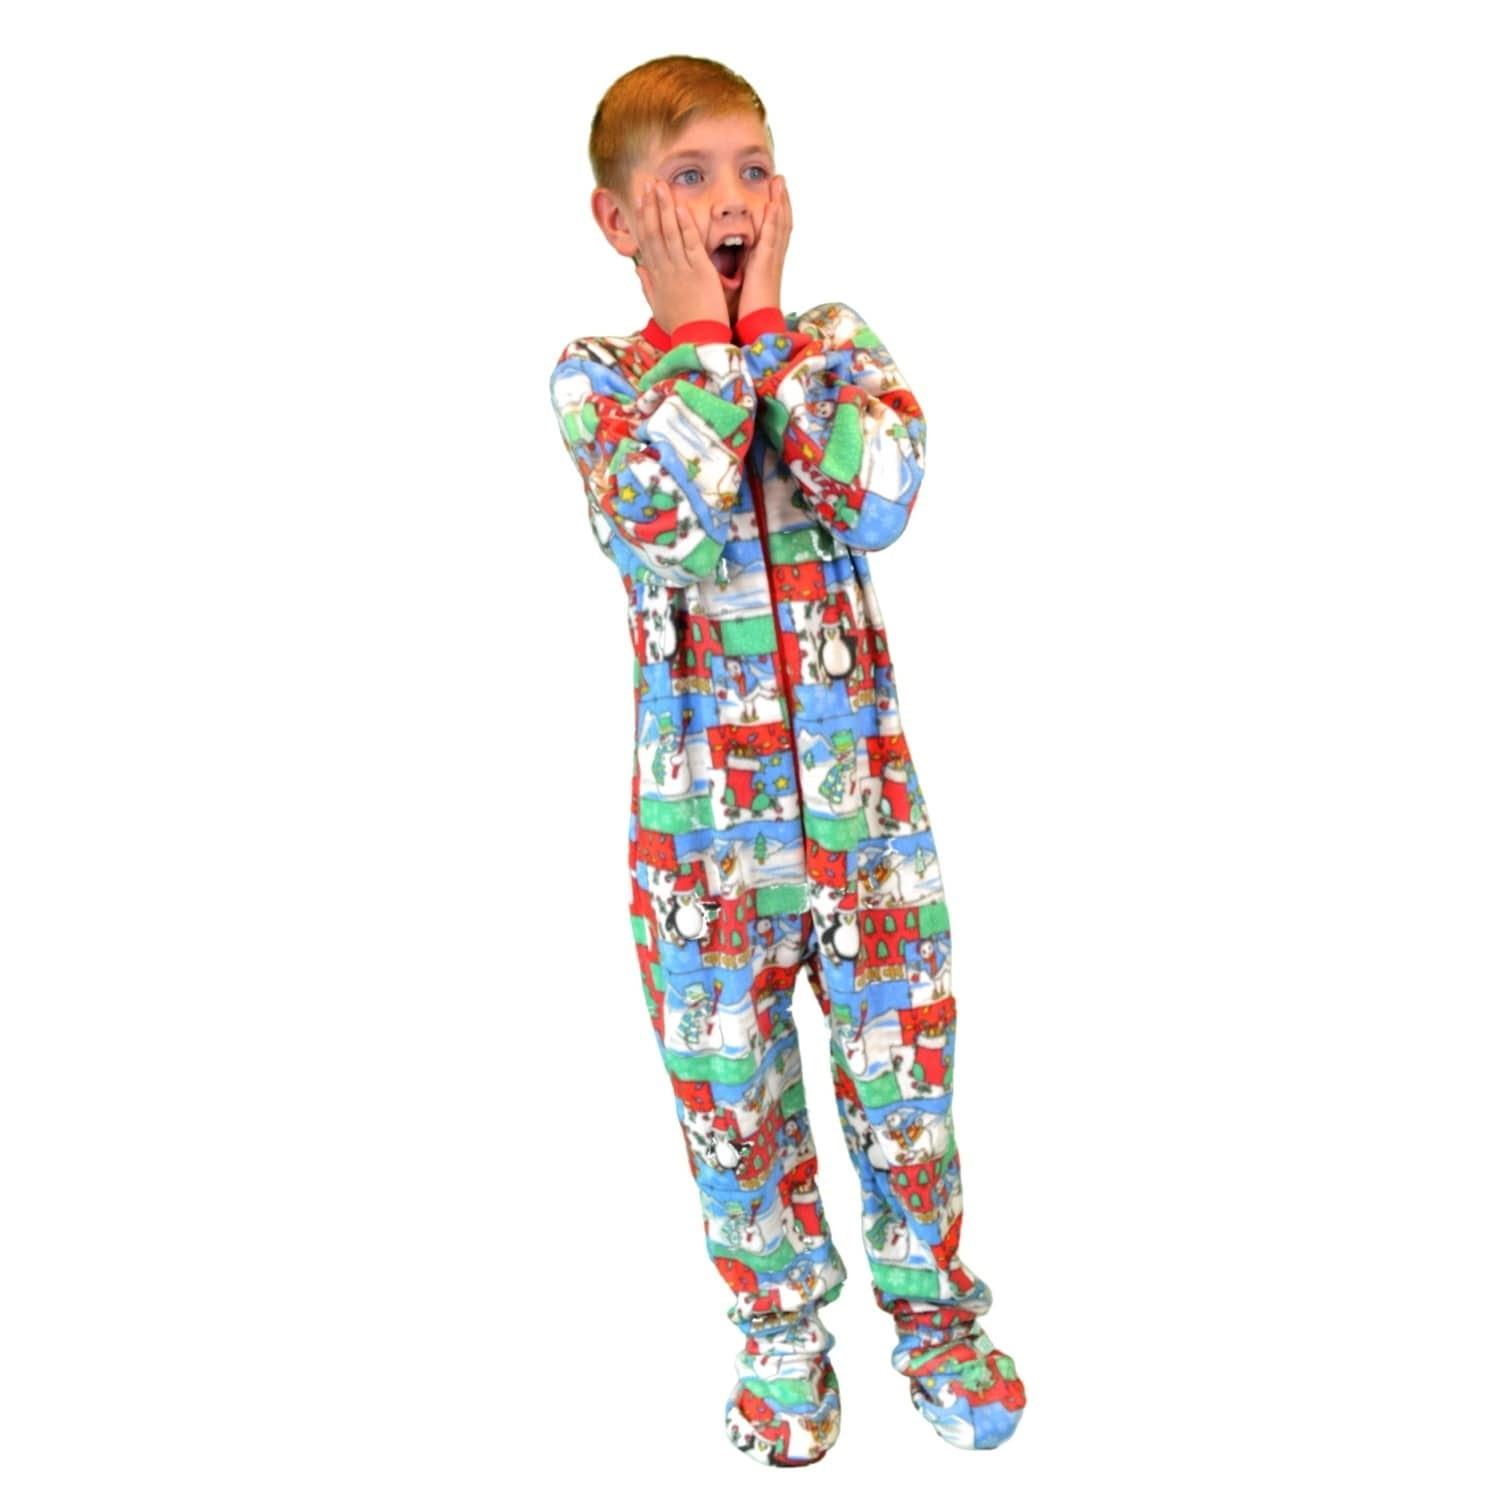 Christmas Footie Pajamas For Kids.Kids Fleece Christmas One Piece Footed Pajamas Sleeper